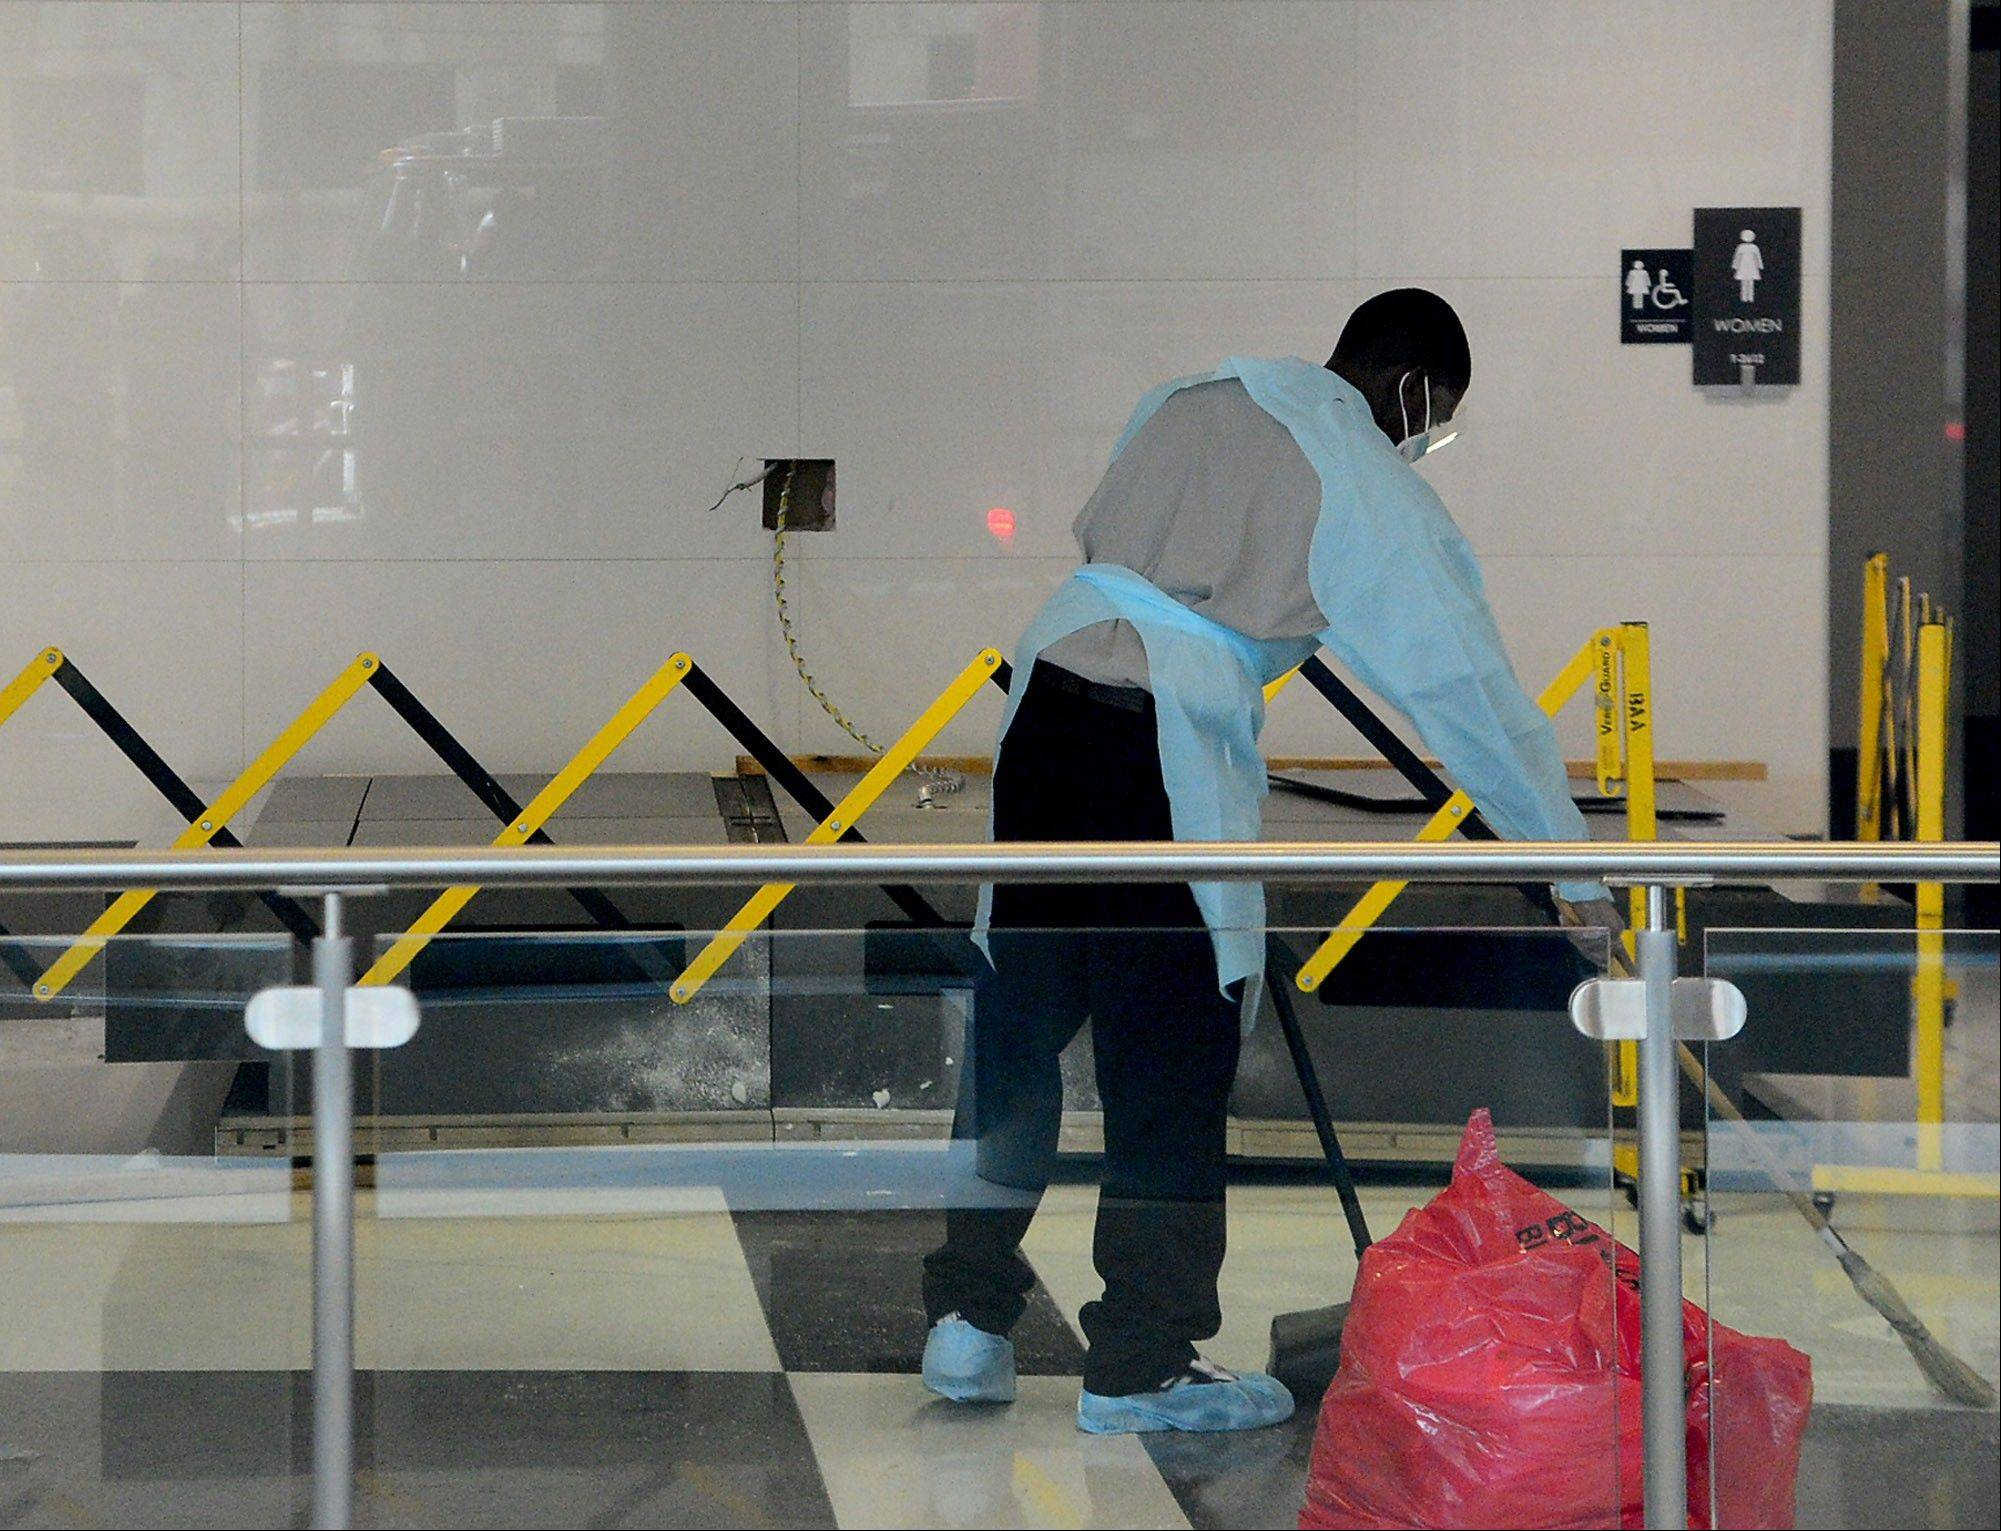 A maintenance worker sweeps up debris beside a message board sign that fell Friday on a family, killing a child and injuring the mother and two other children in the terminal at the Birmingham-Shuttlesworth International Airport in Birmingham, Ala.